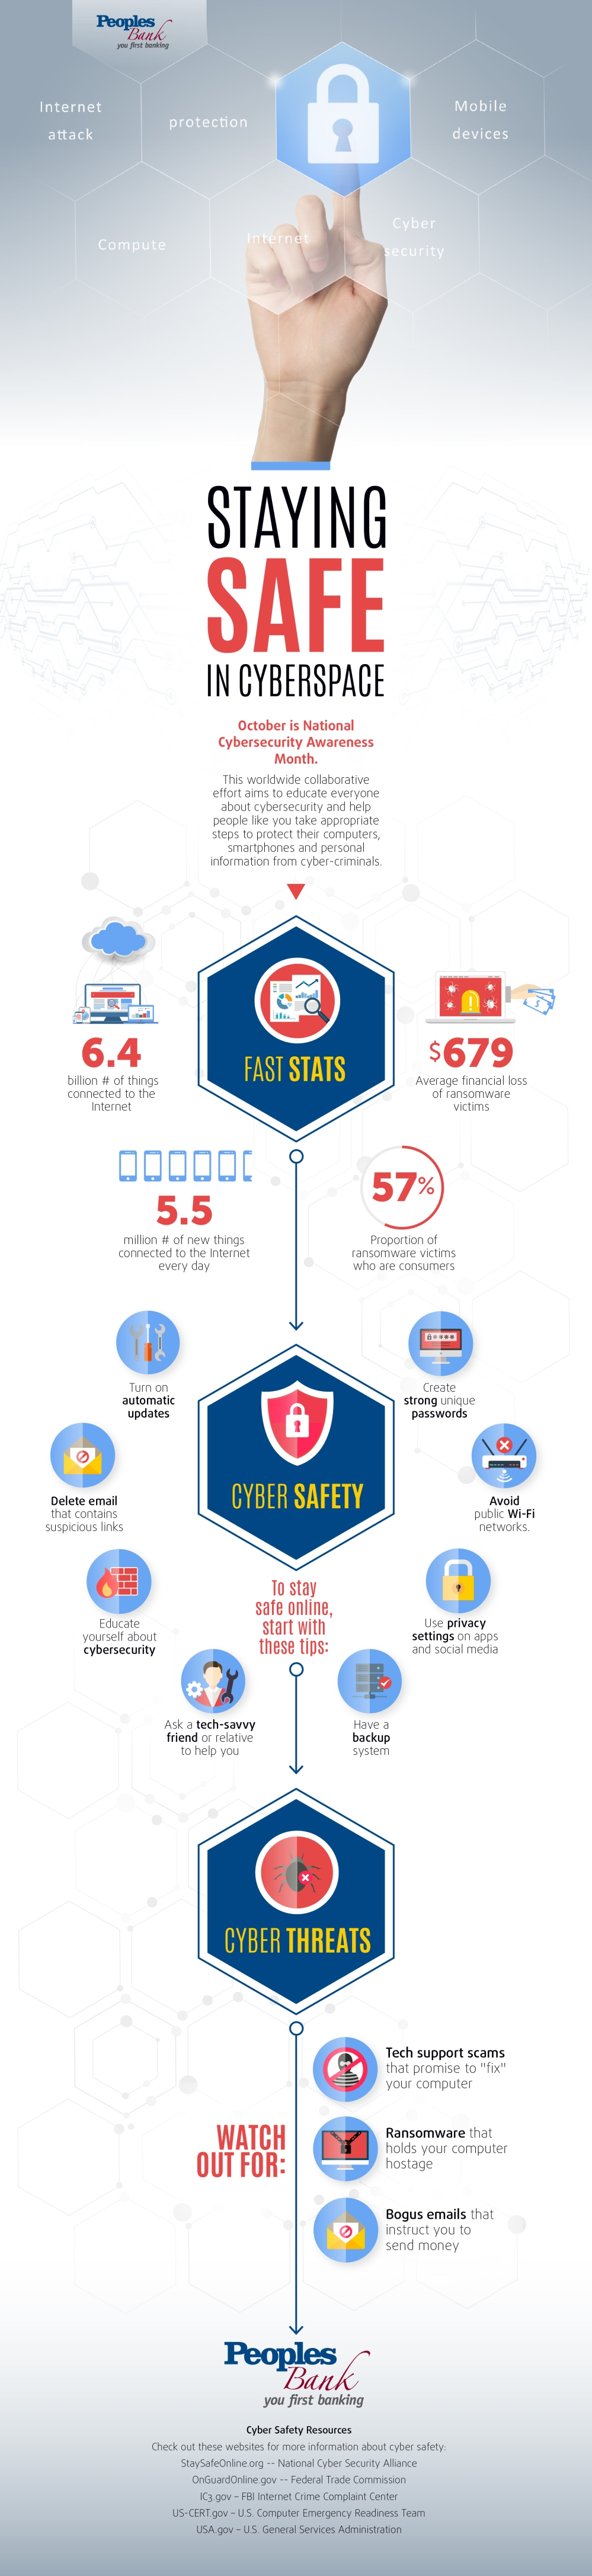 Staying_Safe_in_Cyberspace_Infographic-01